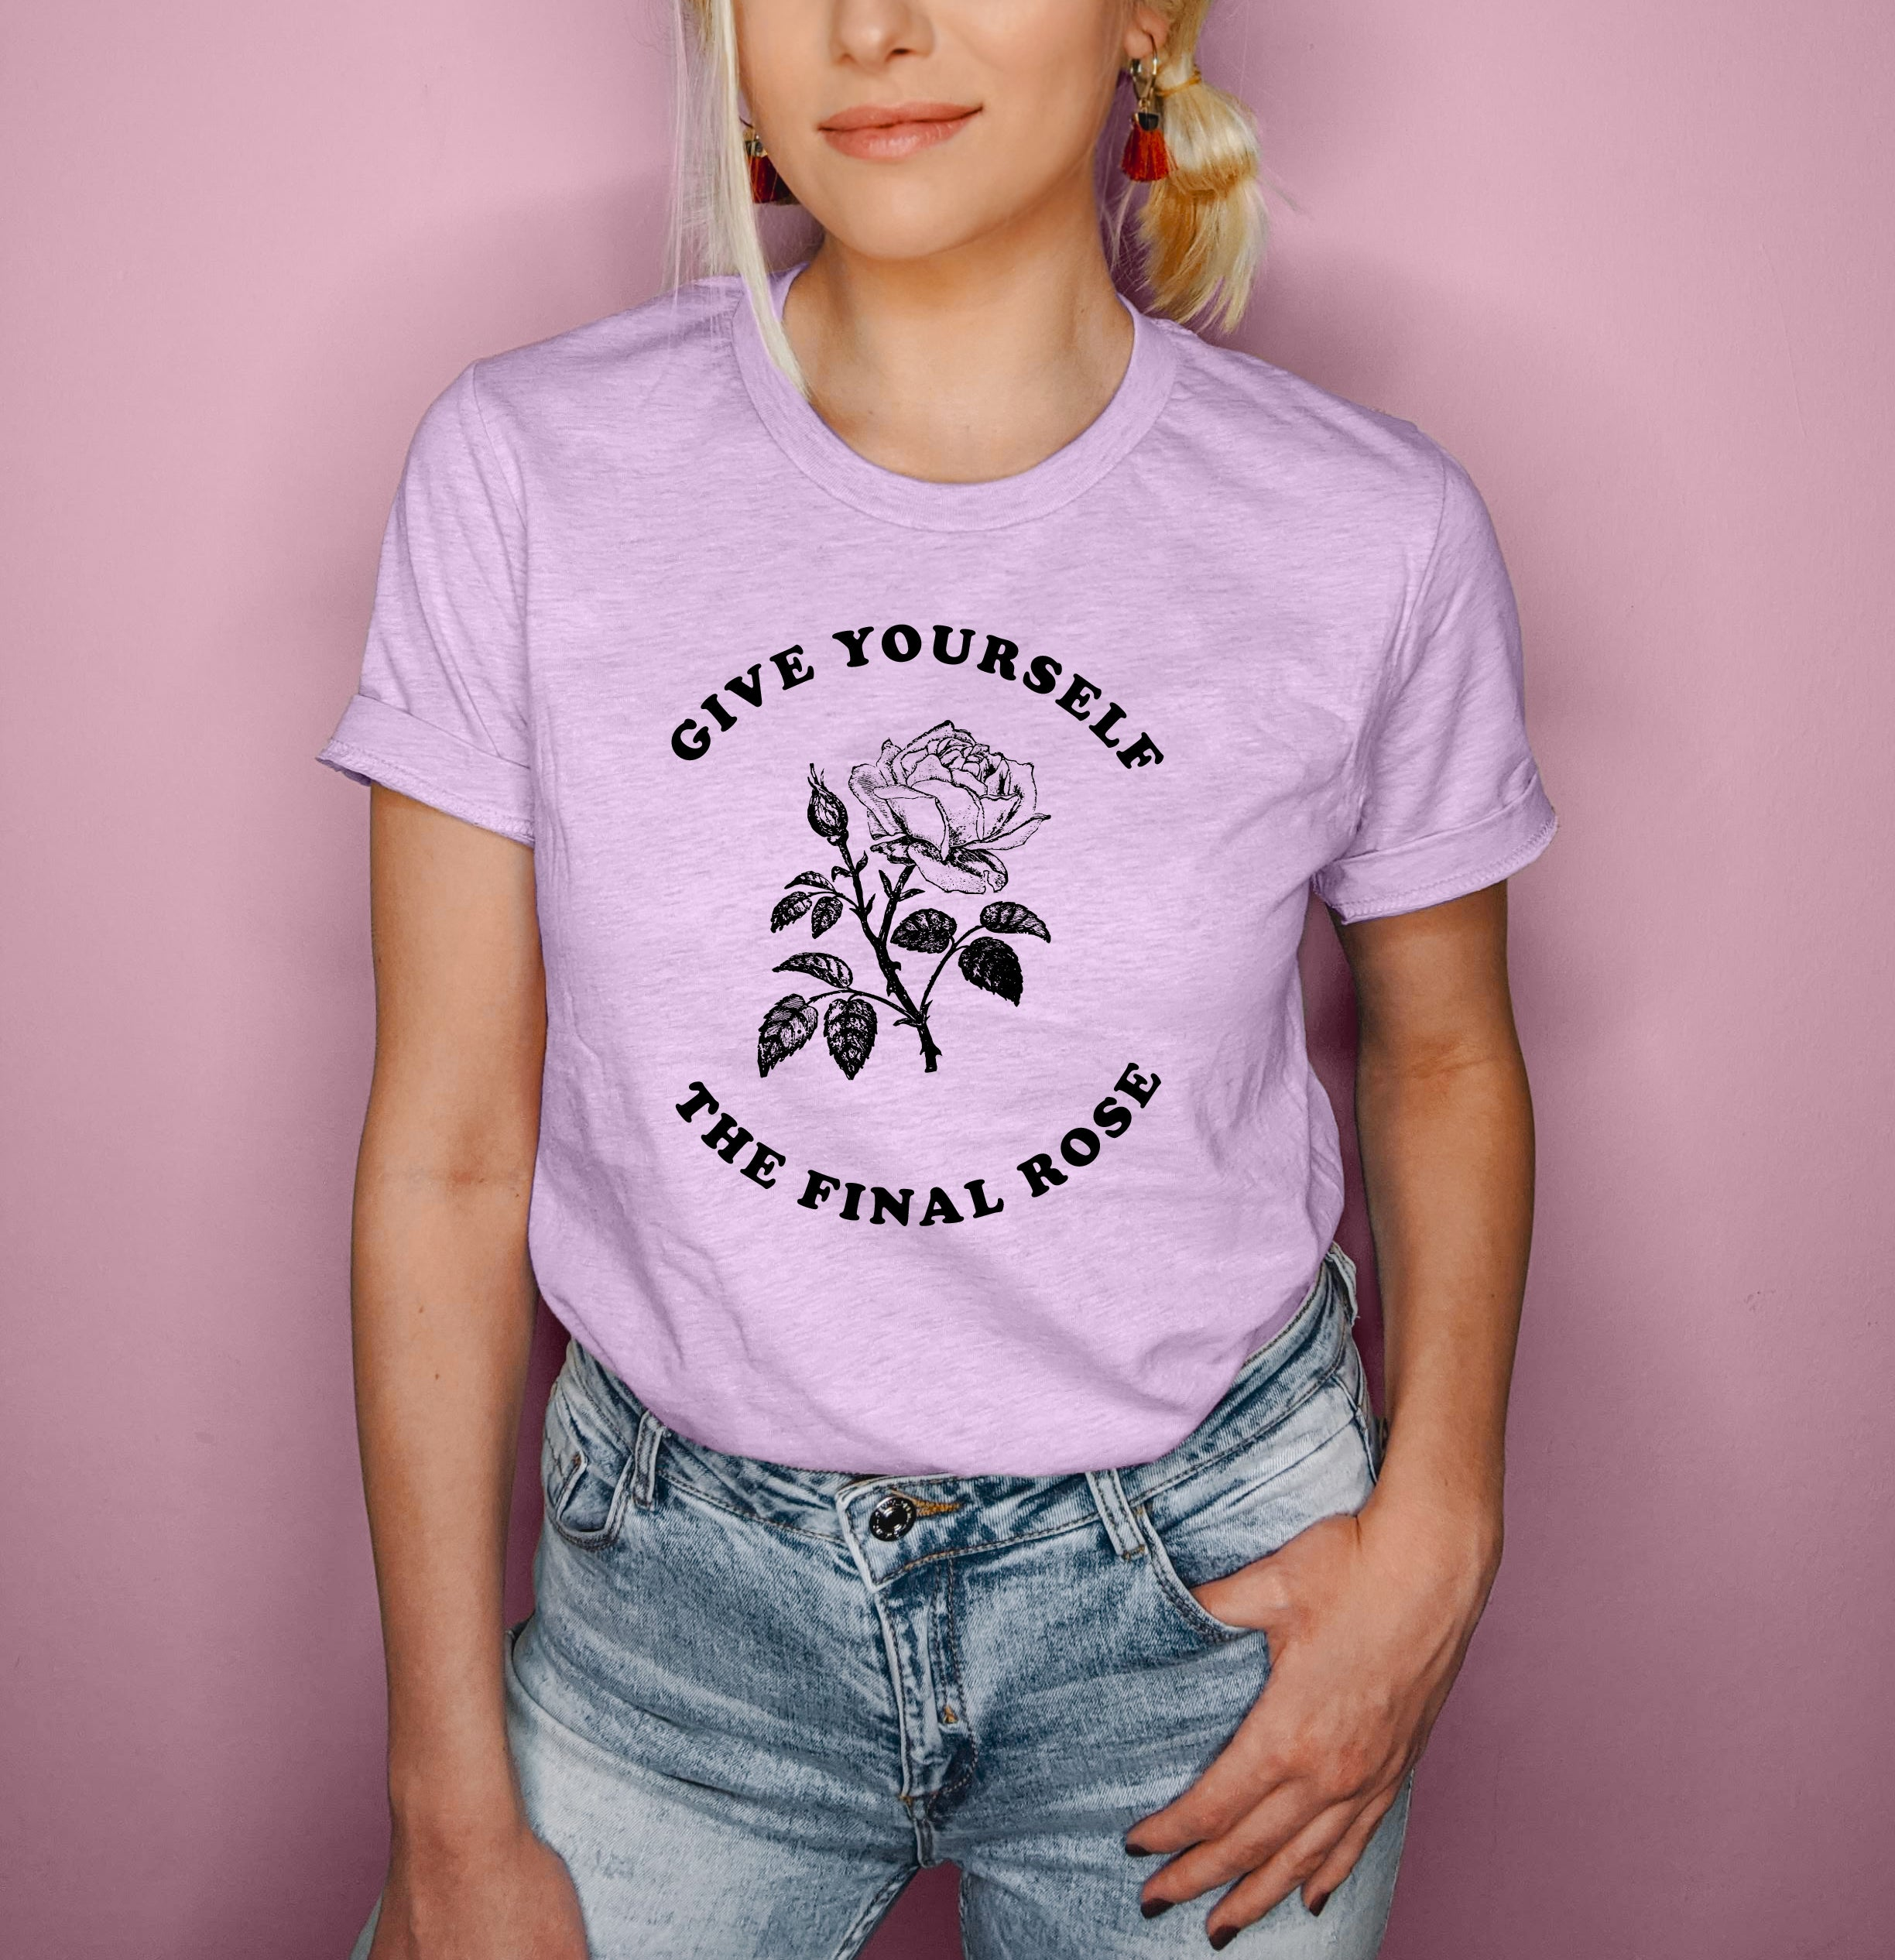 Give Yourself The Final Rose Shirt